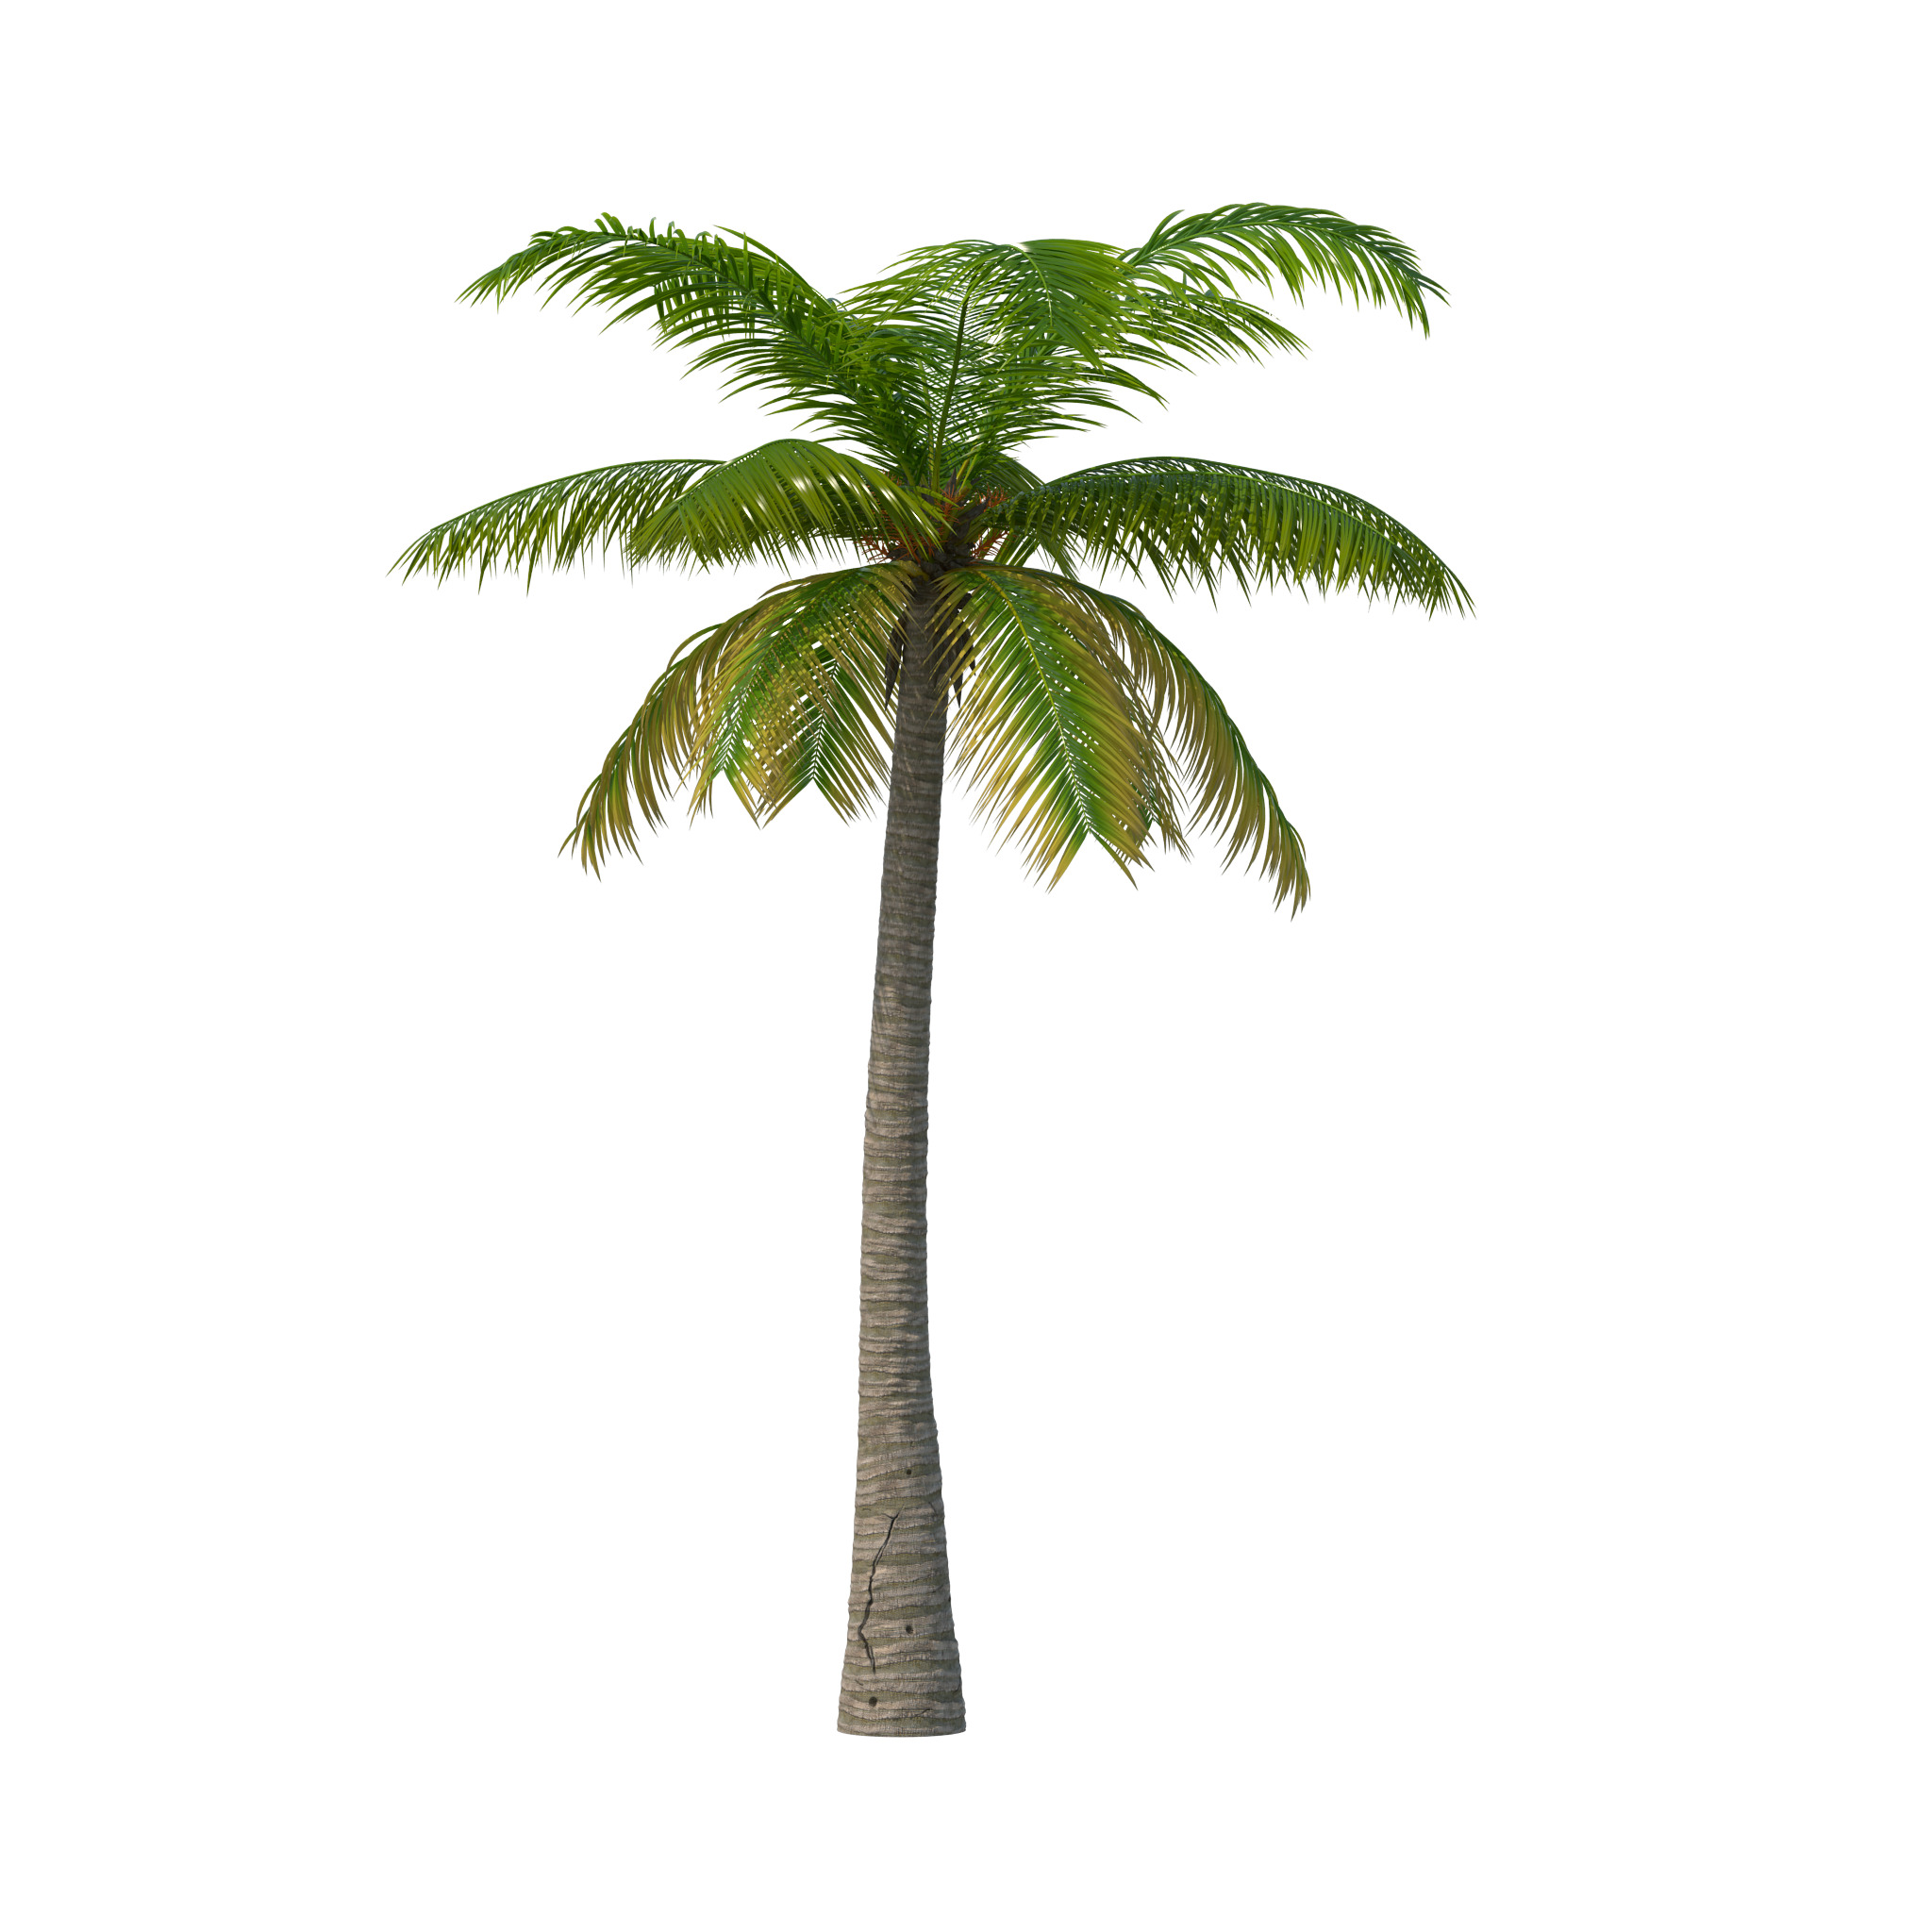 Palm Tree Treetops Png & Free Palm Tree Treetops.png ...